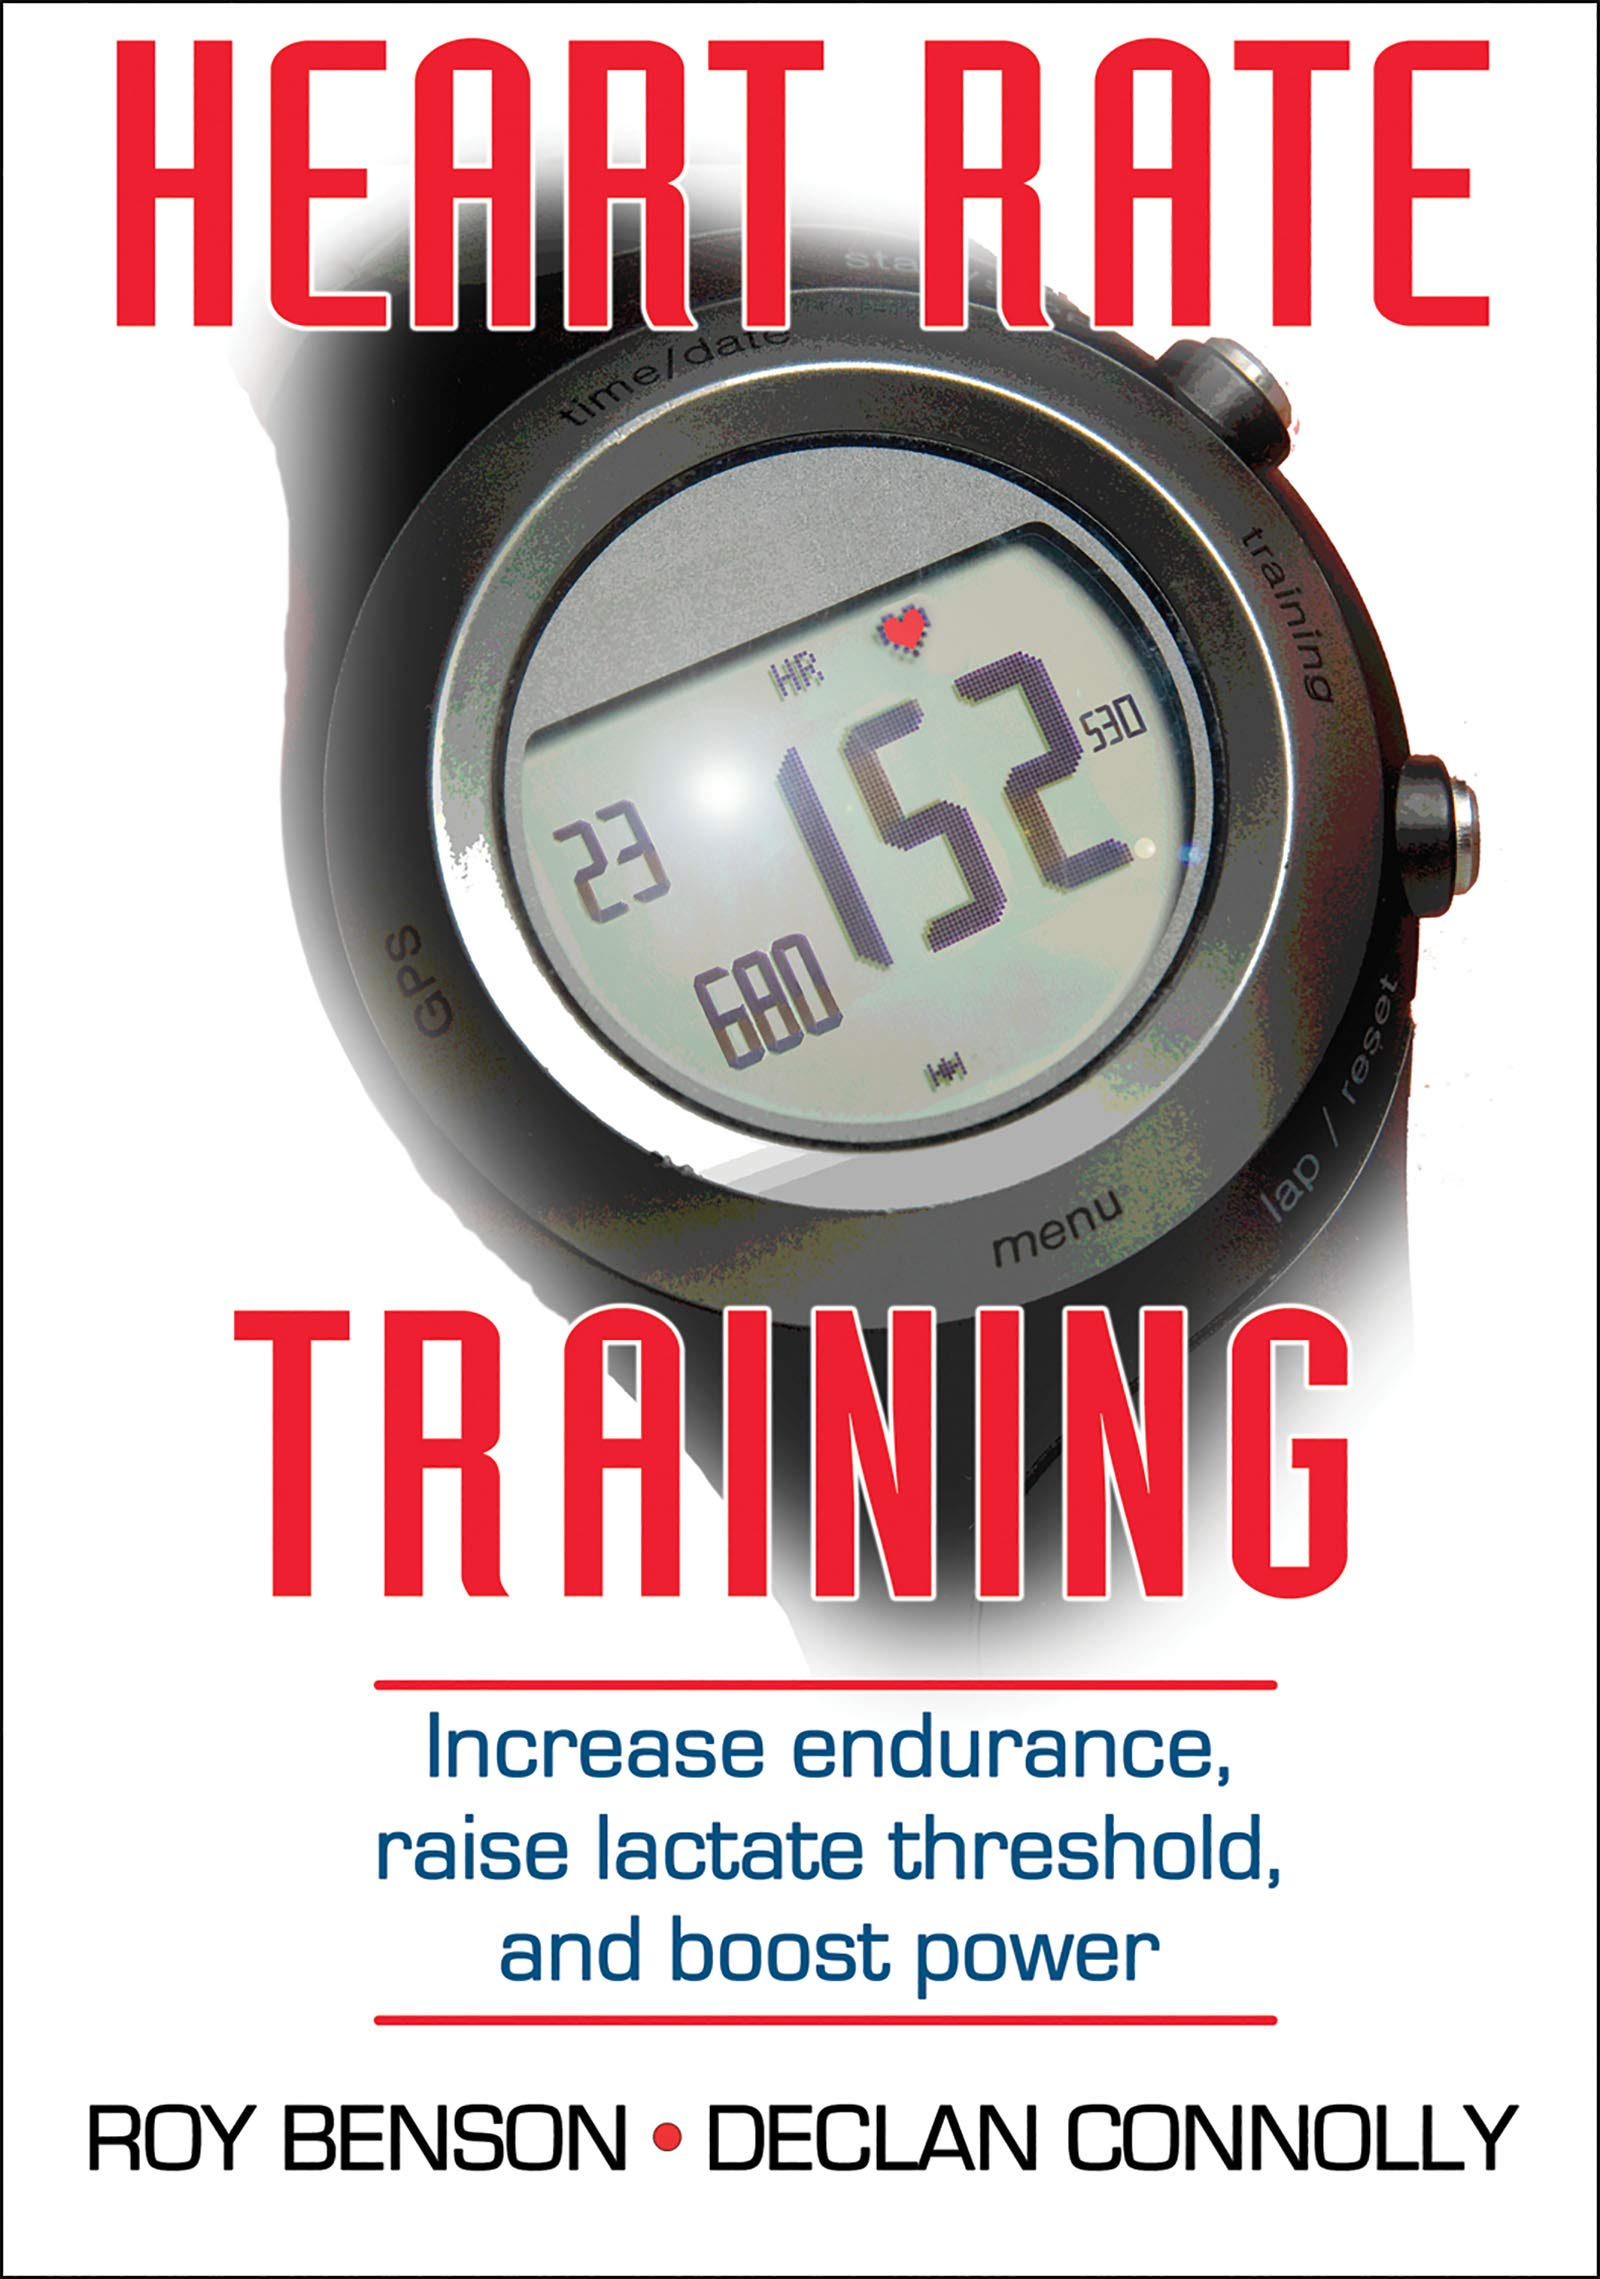 Heart Rate Training Roy Benson Declan Connolly 9780736086554